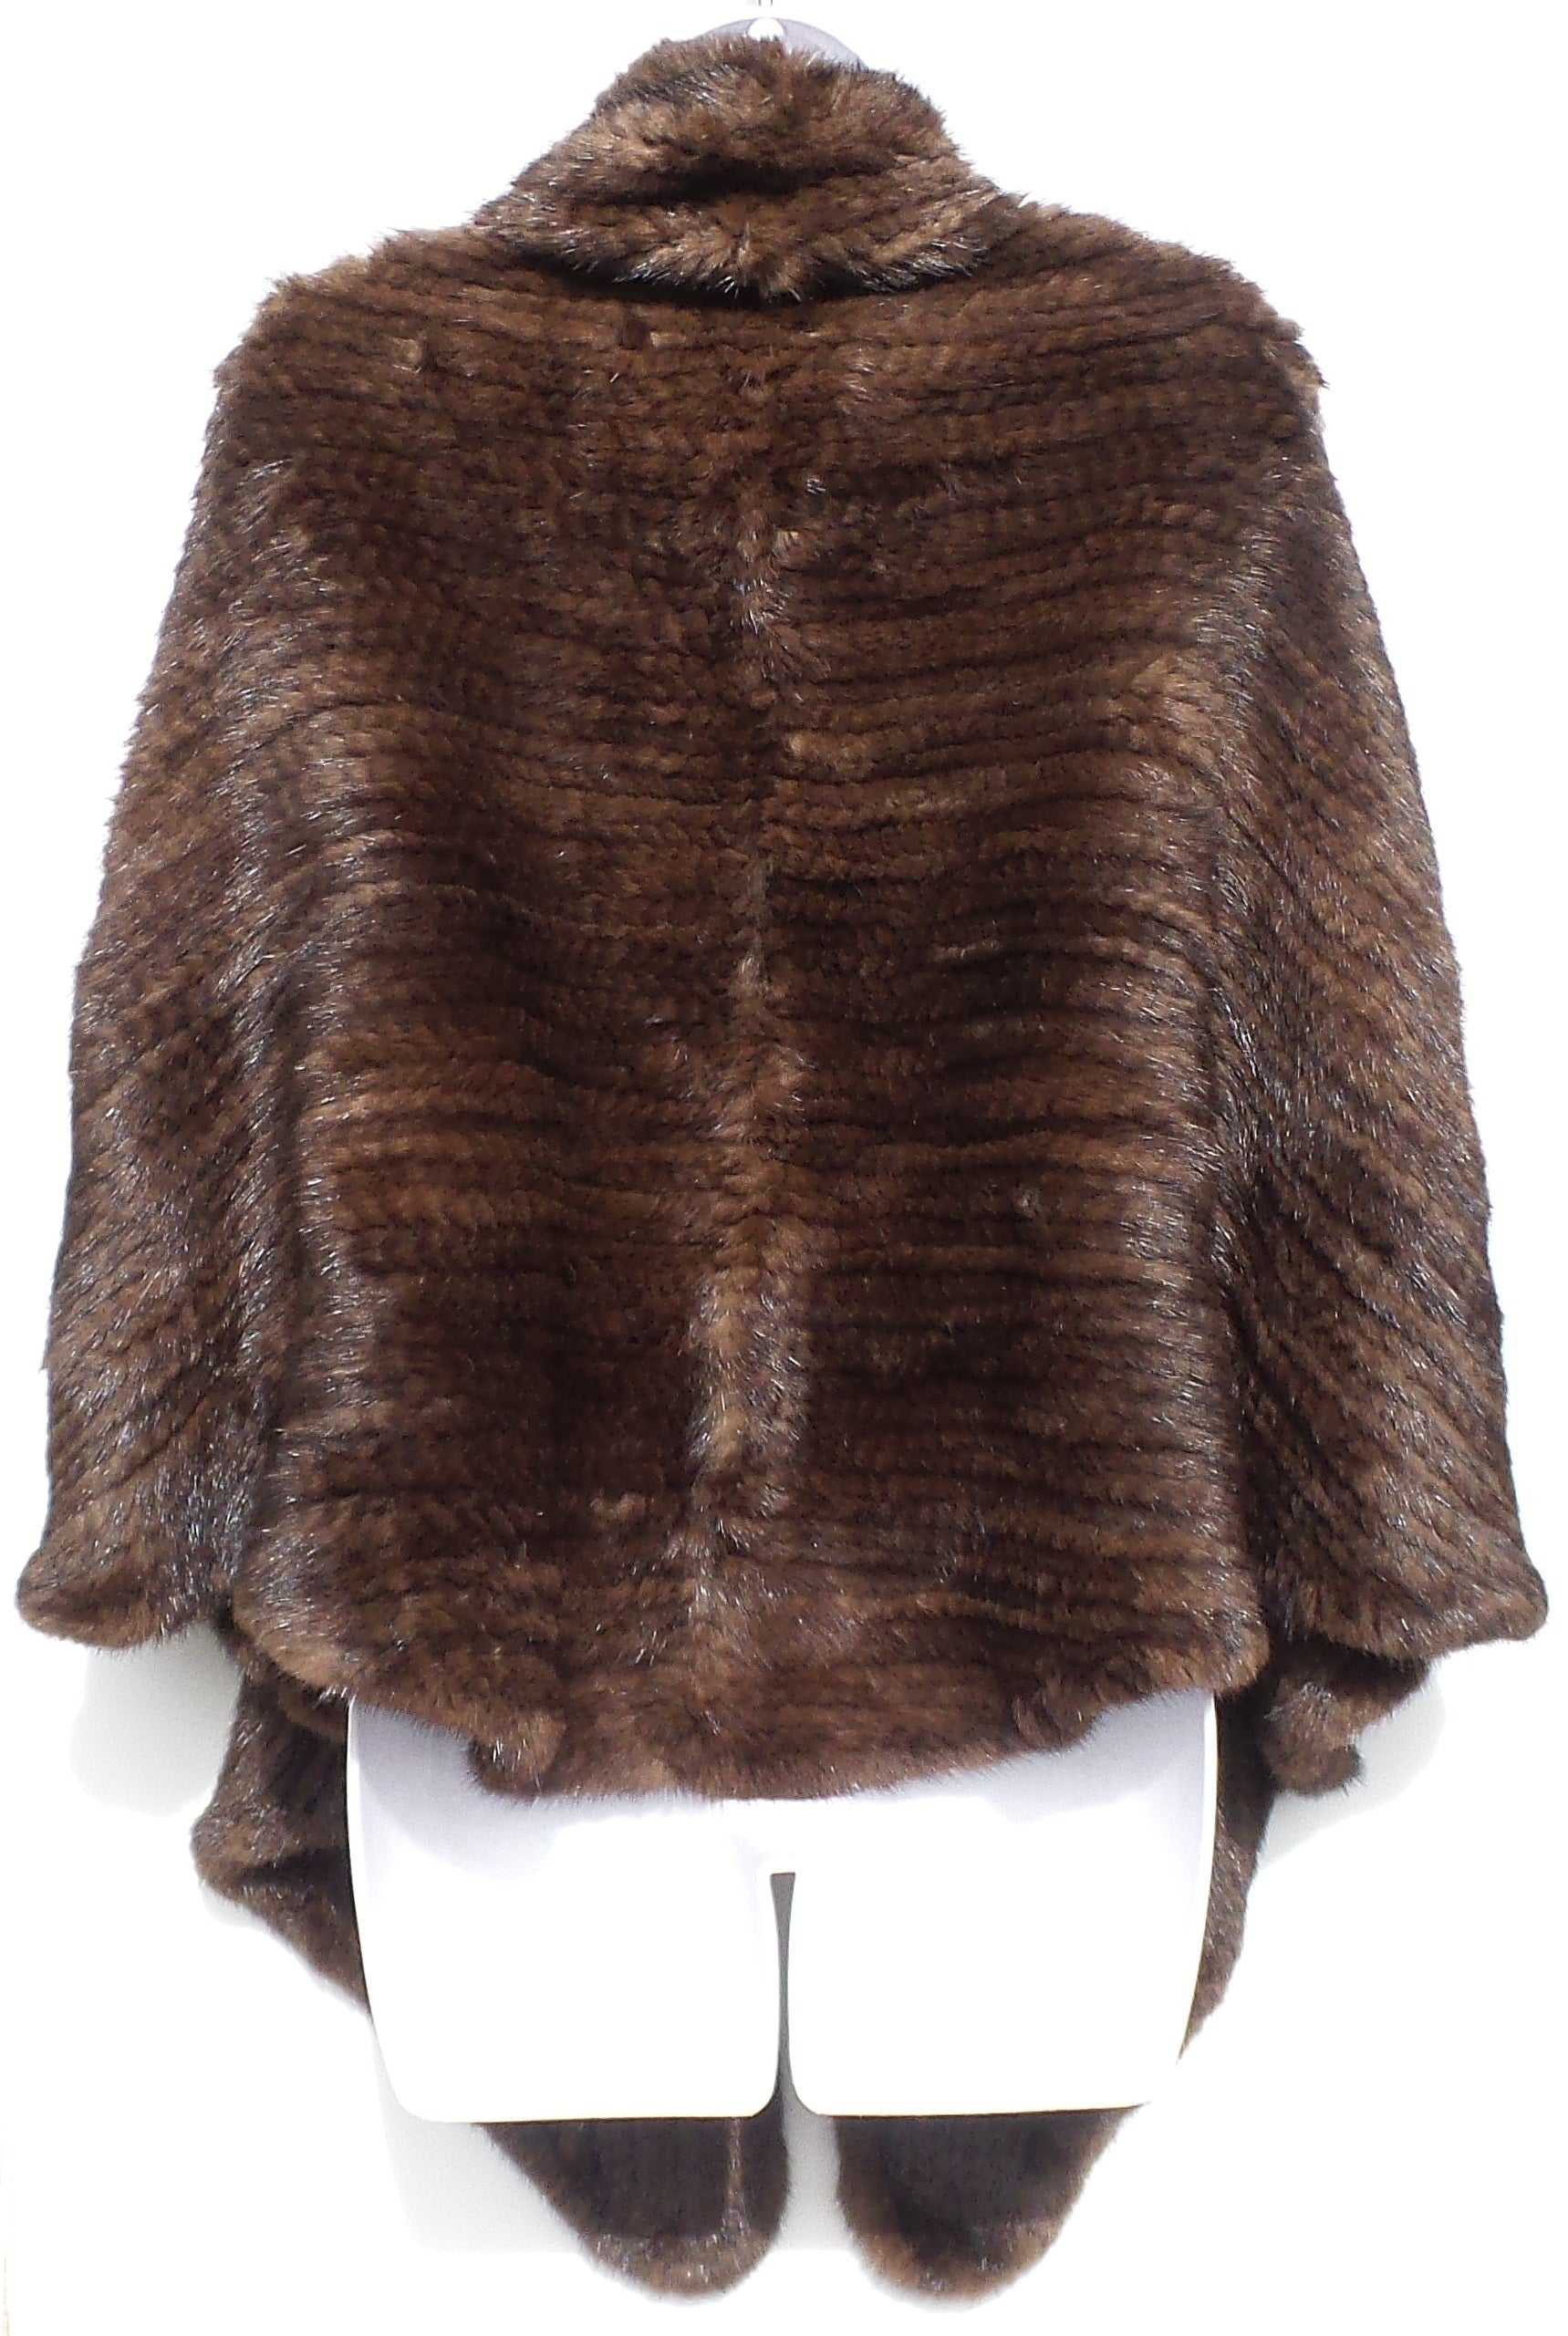 'Sold' TRILOGY Collections Natural Brown Mink Fur Woven Knit Cape Hook Eye Close Poncho